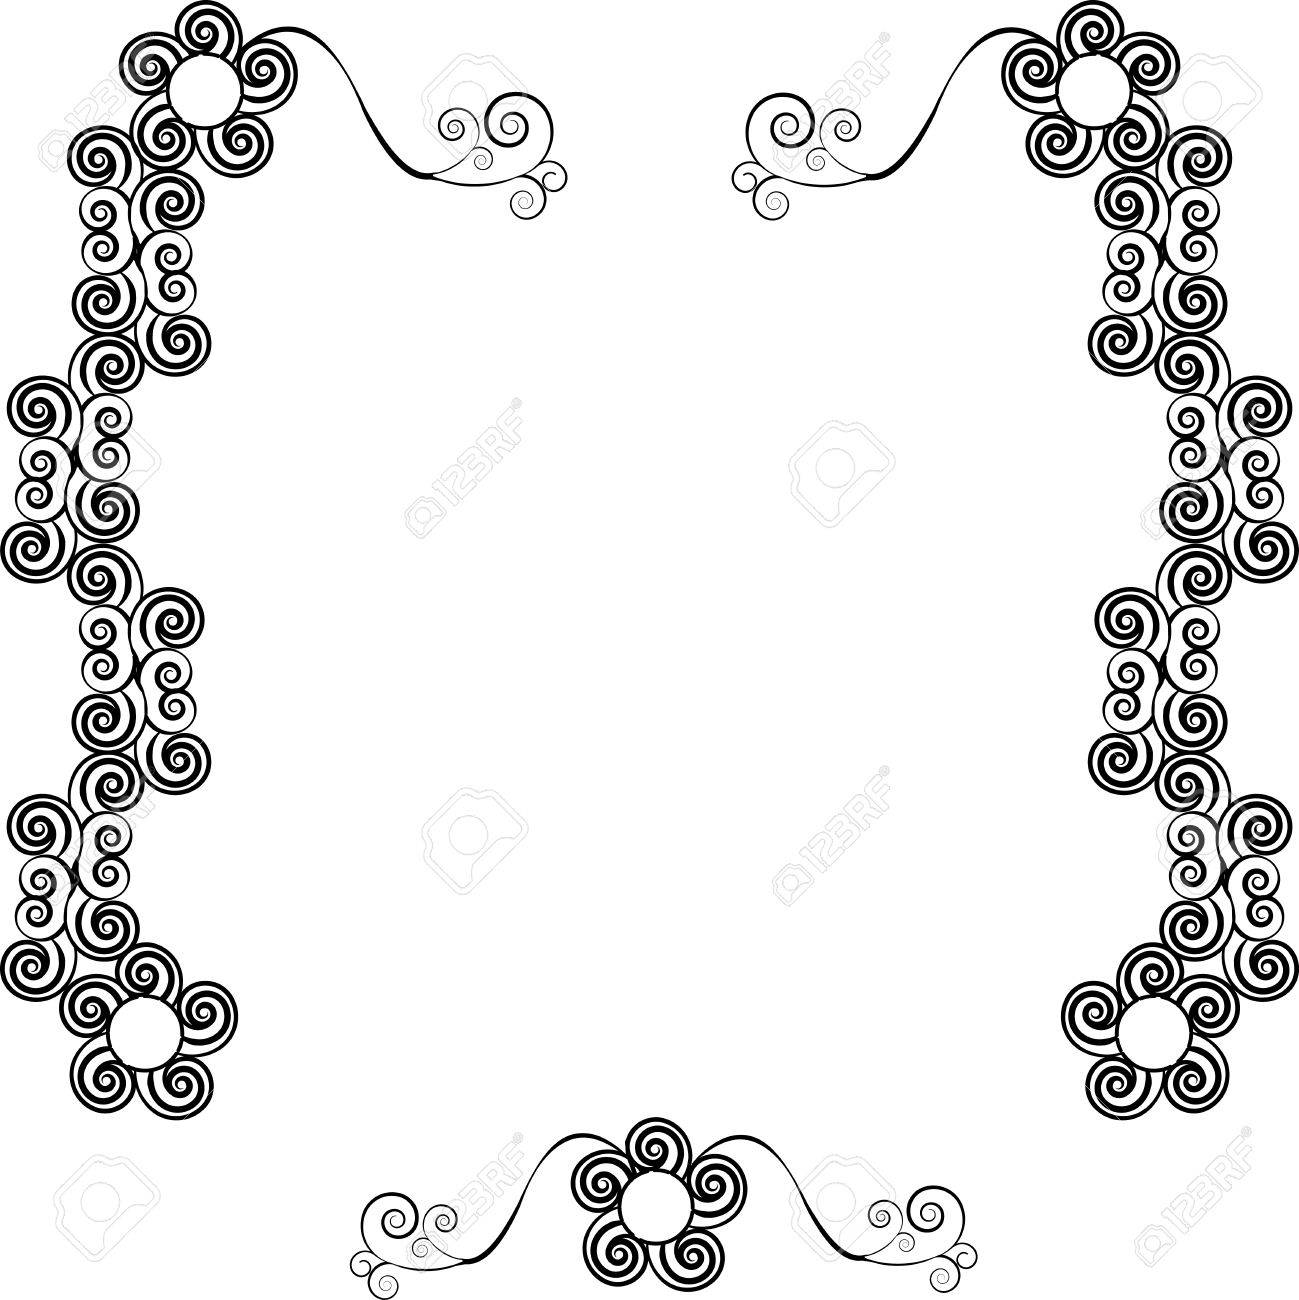 Decorative ornamental frame for text with swirls, one in the series of similar images silhouette Stock Vector - 25307707